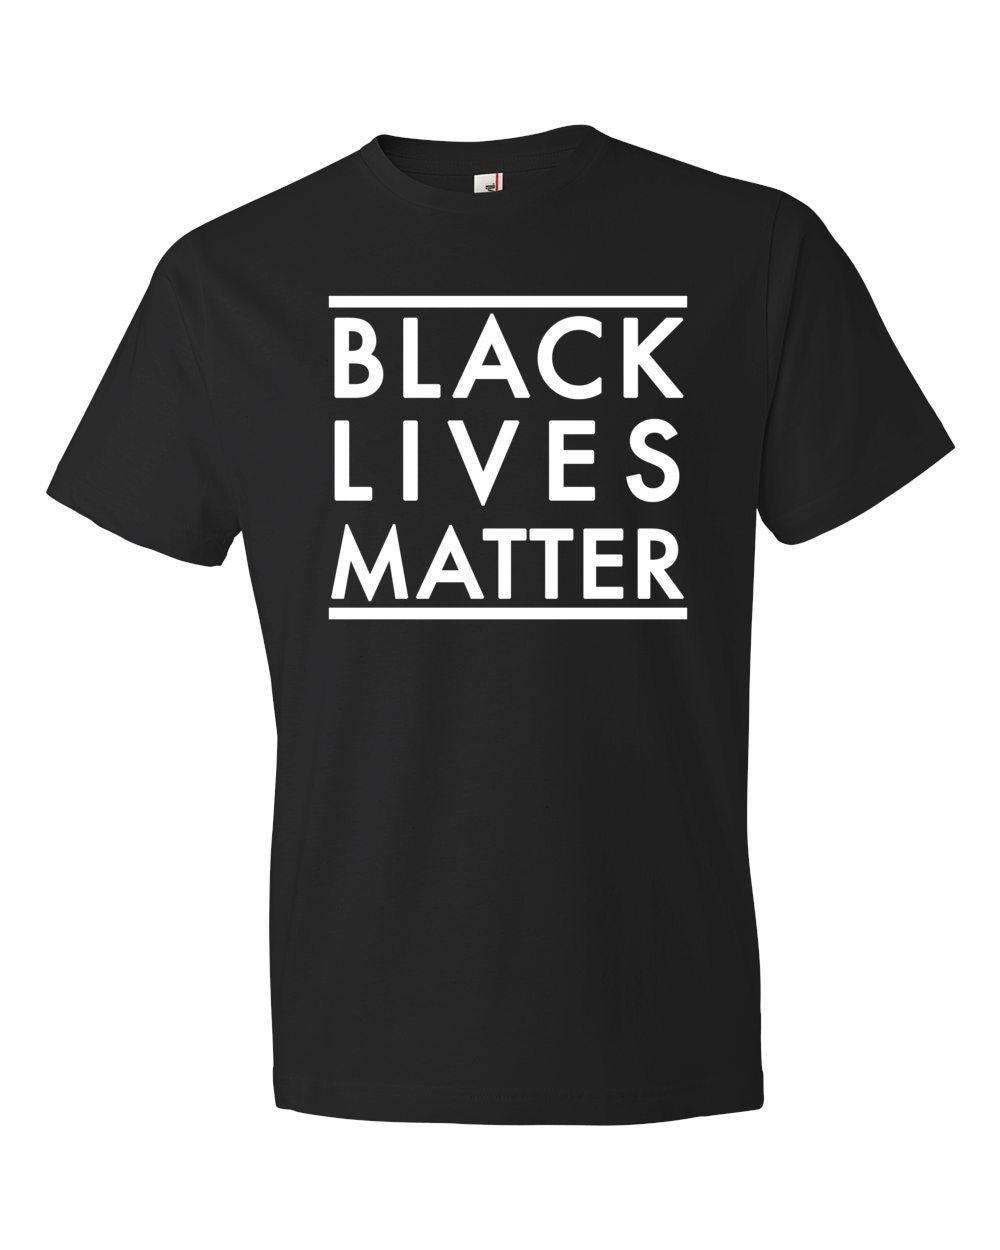 B is for Black Sweatshirt - Blm shirt black history shirt civil rights shirt black lives shirt Black lives Matter shirt activist movement 71XIYO4t